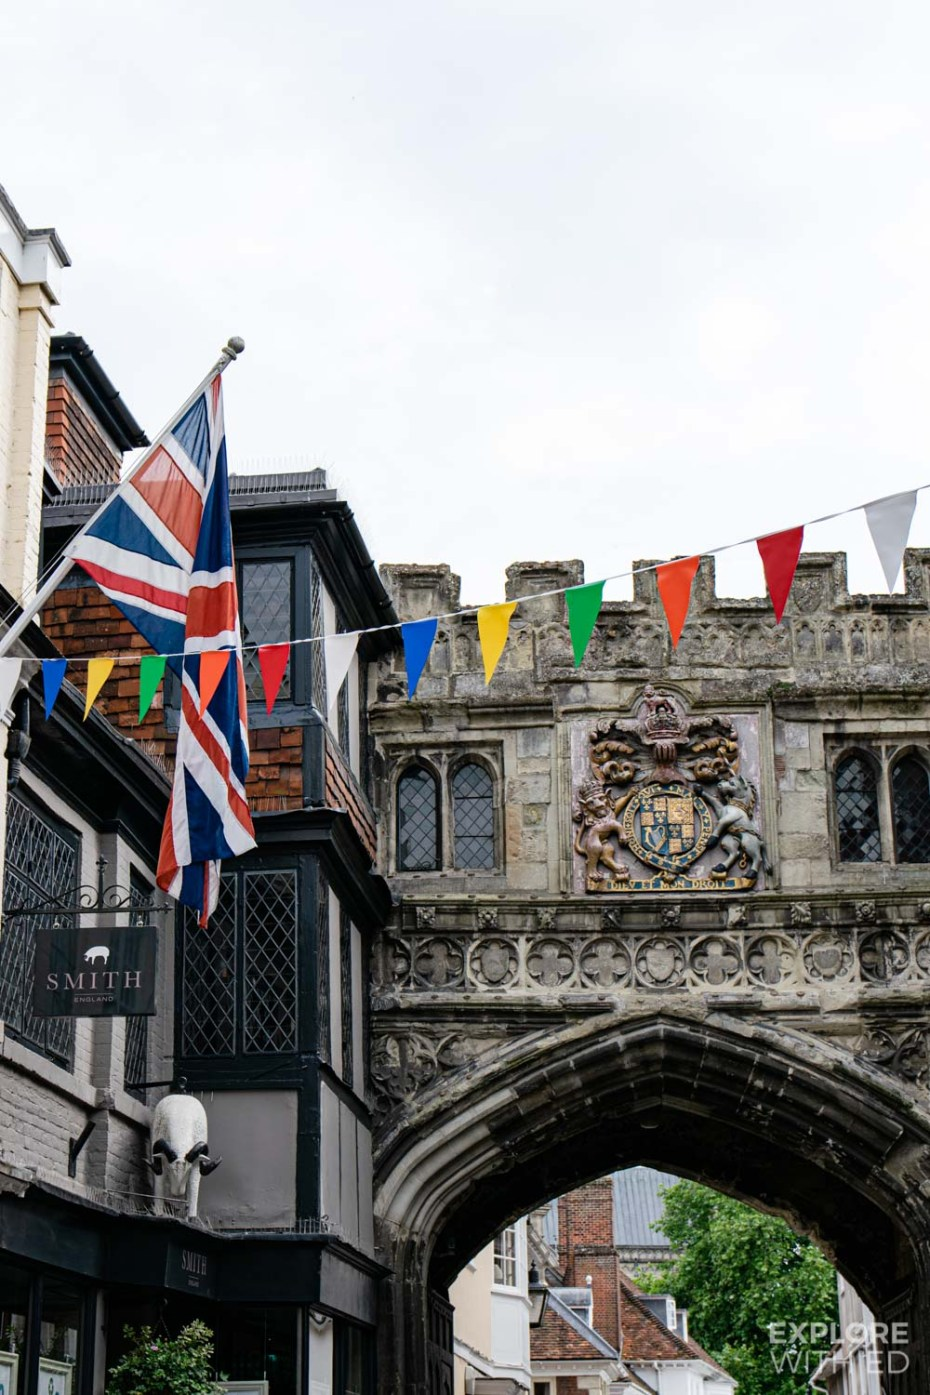 Salisbury medieval style city centre